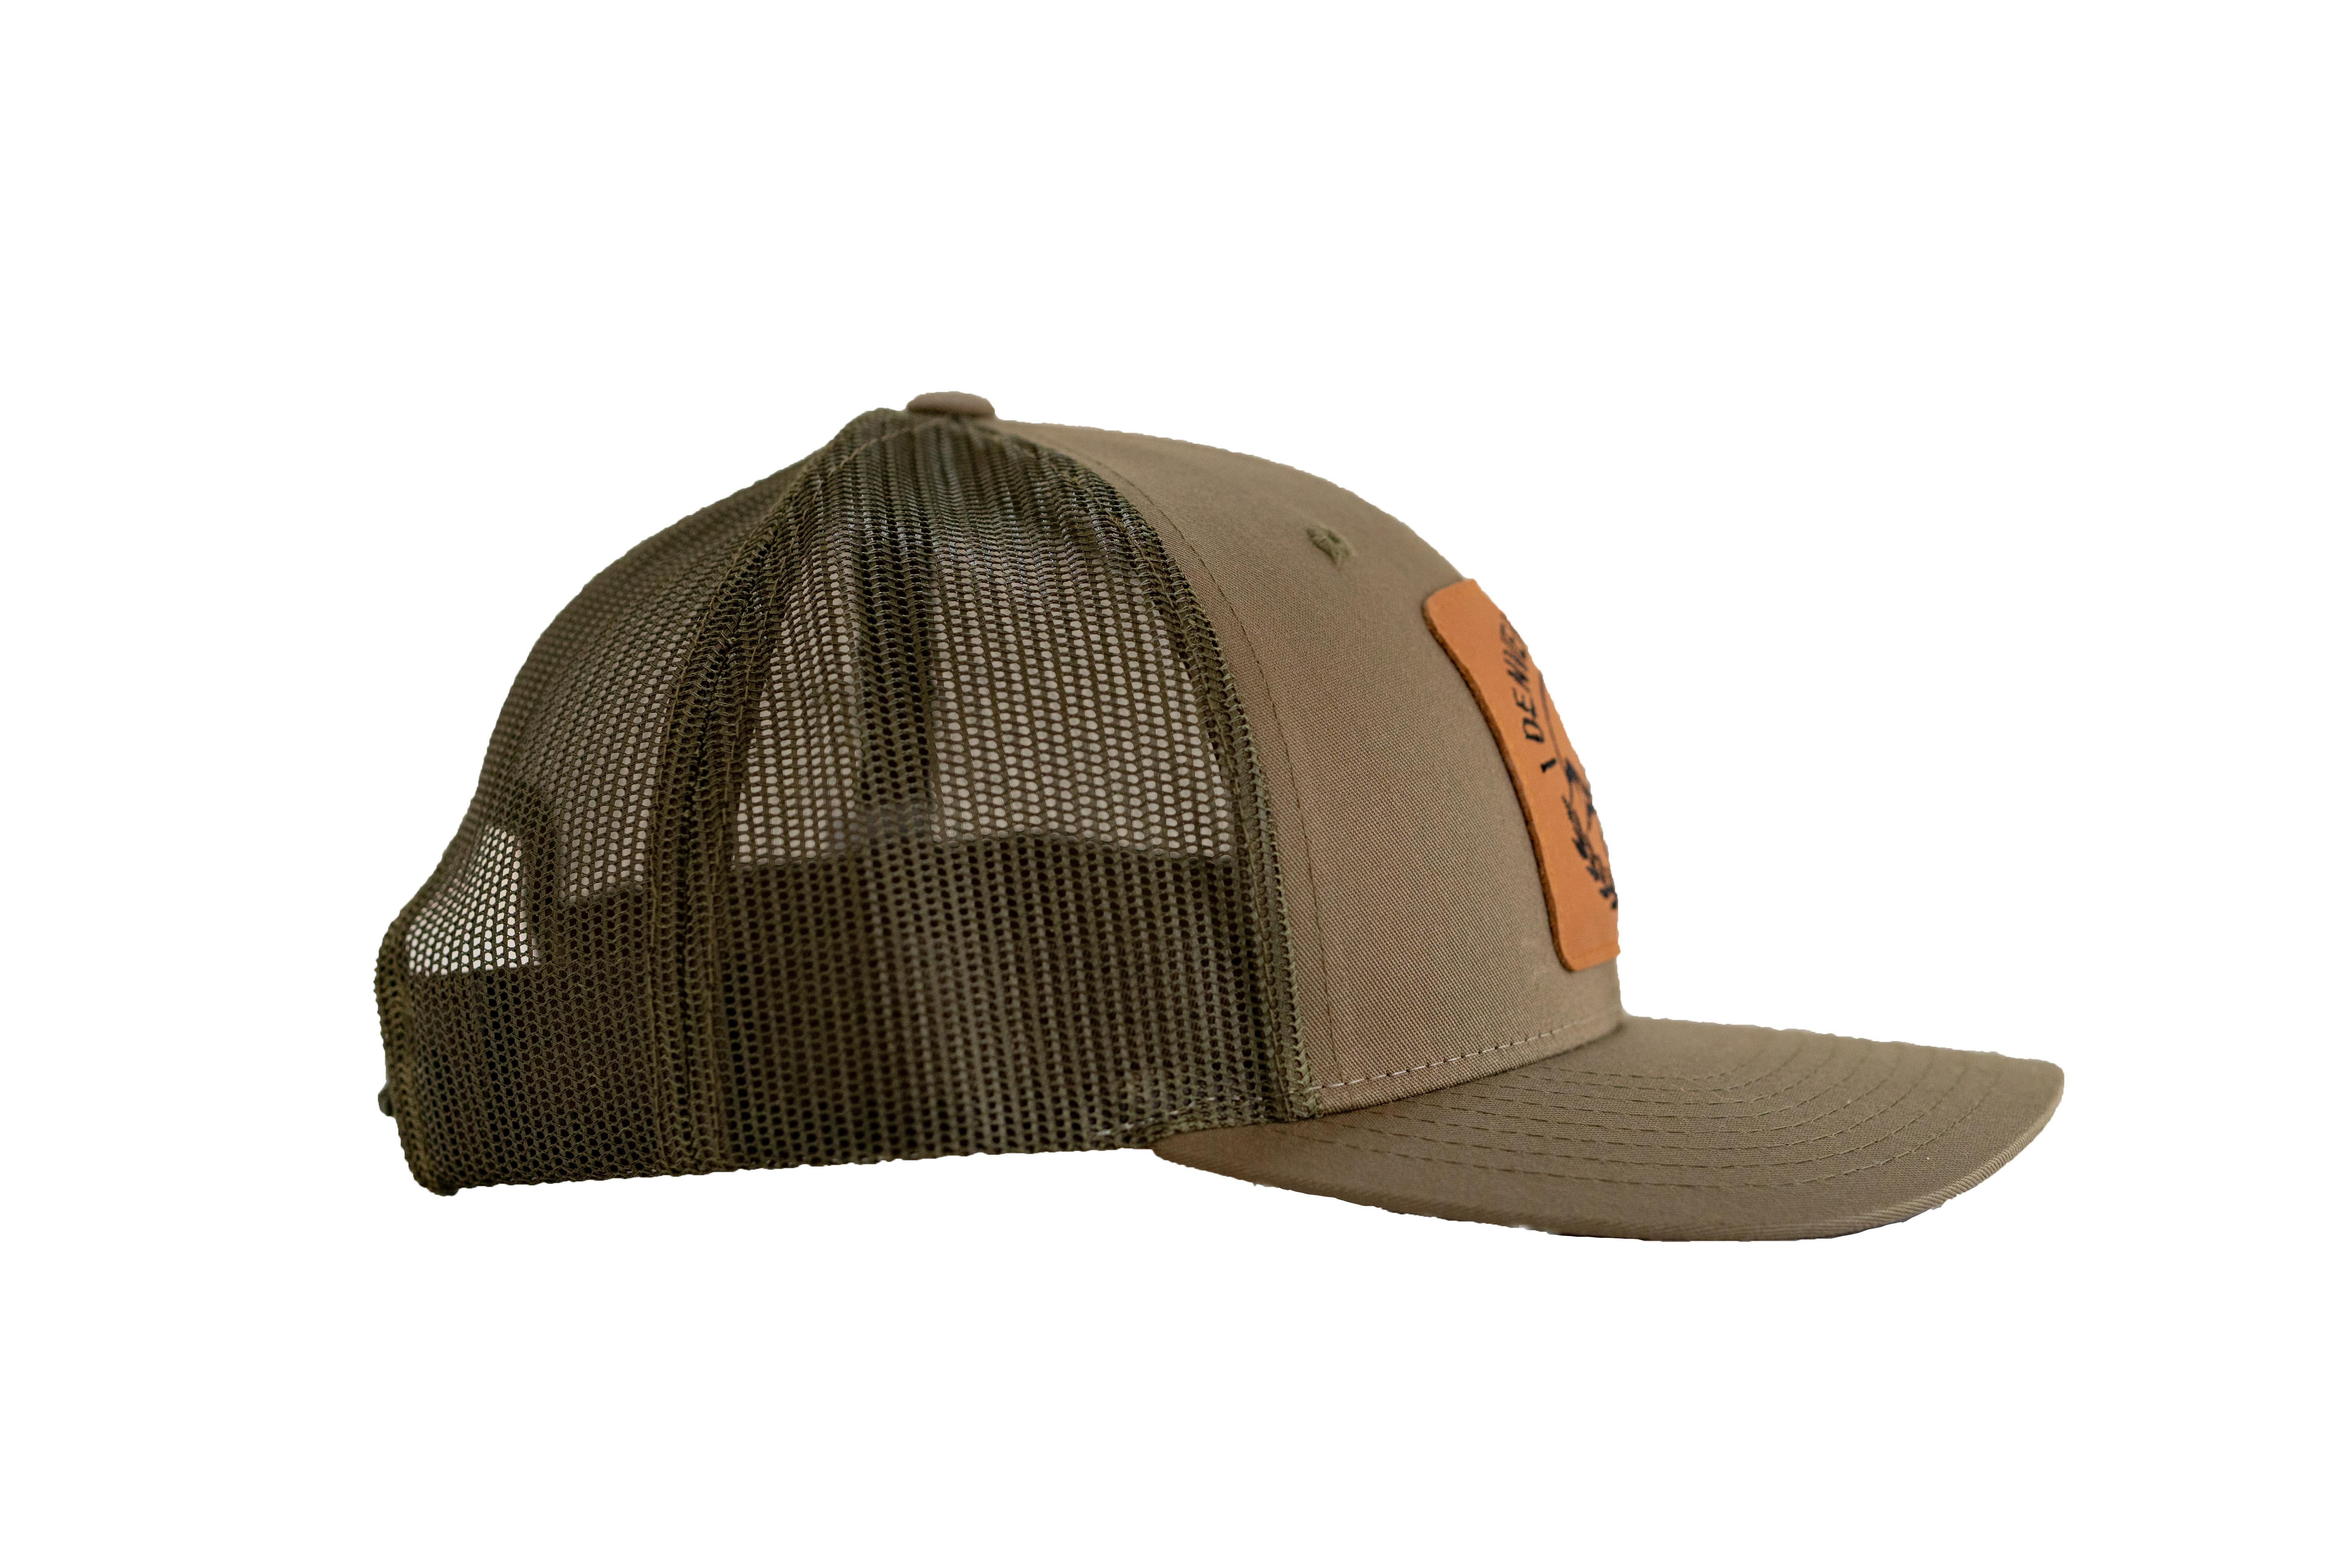 Denver Beer Co Trucker Hat, Snap Back, Olive Green, with Embroidered Leather Patch_SWATCH